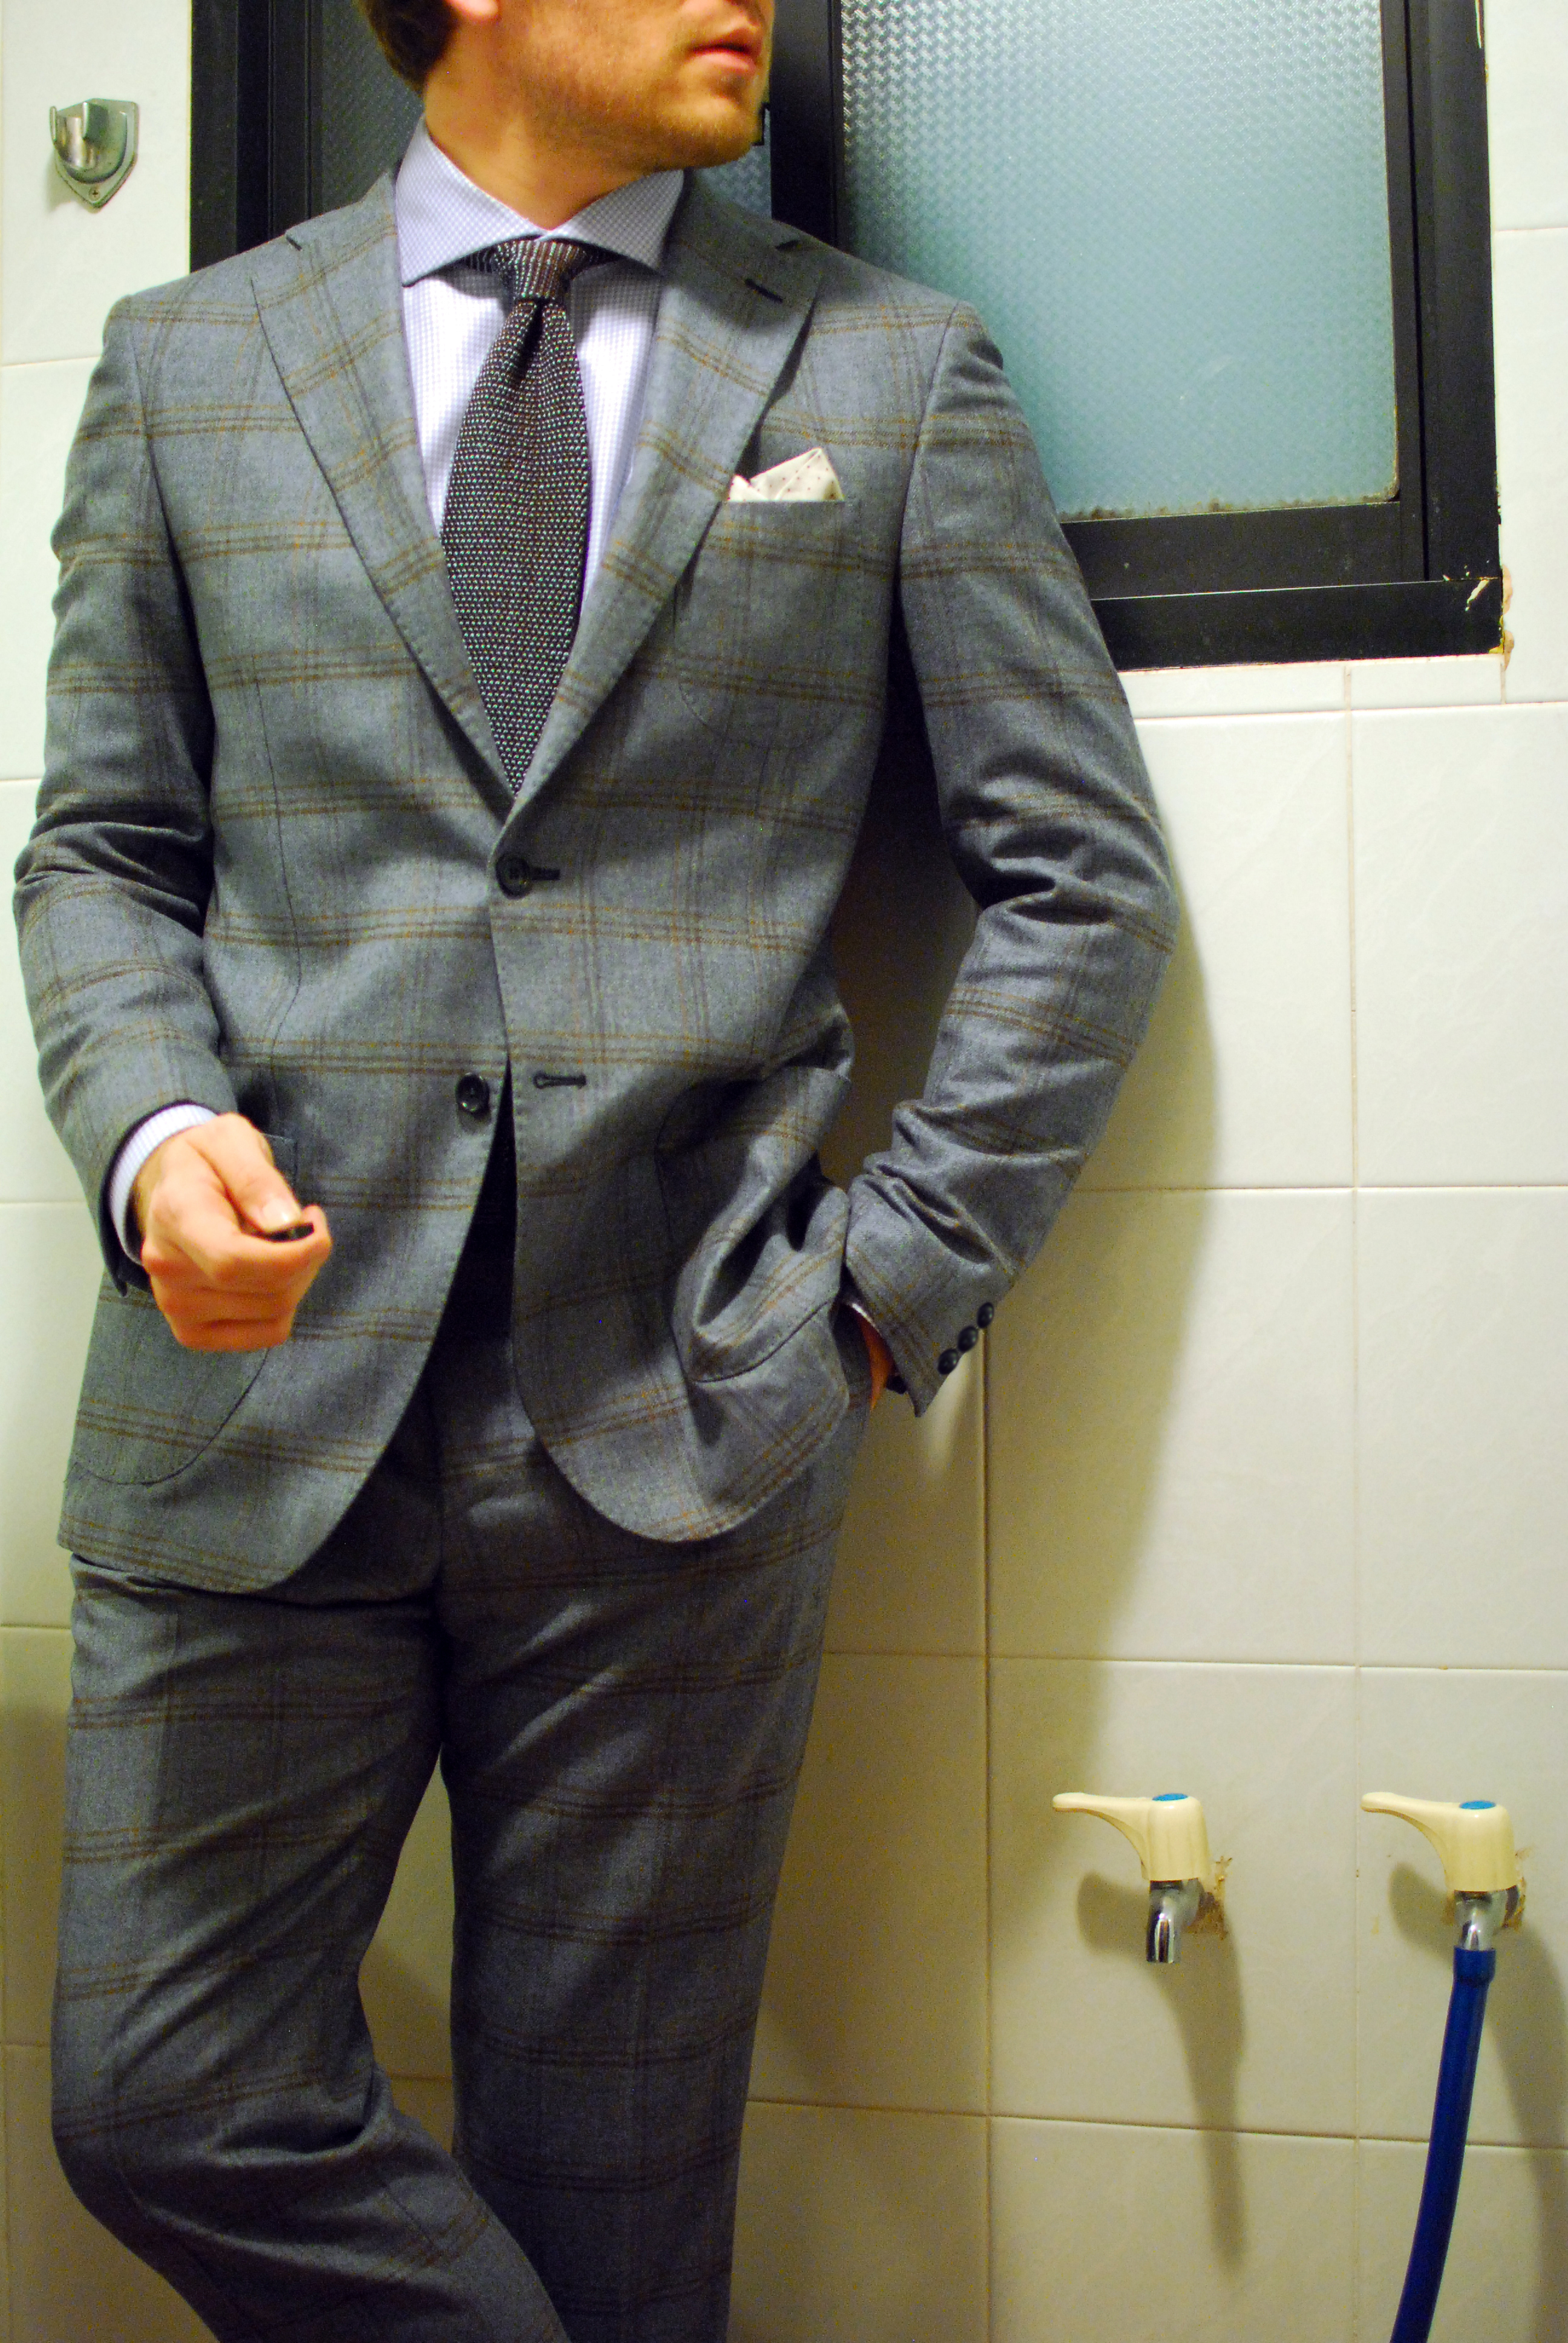 The Casual Suit vs. Odd Jacket and Trousers